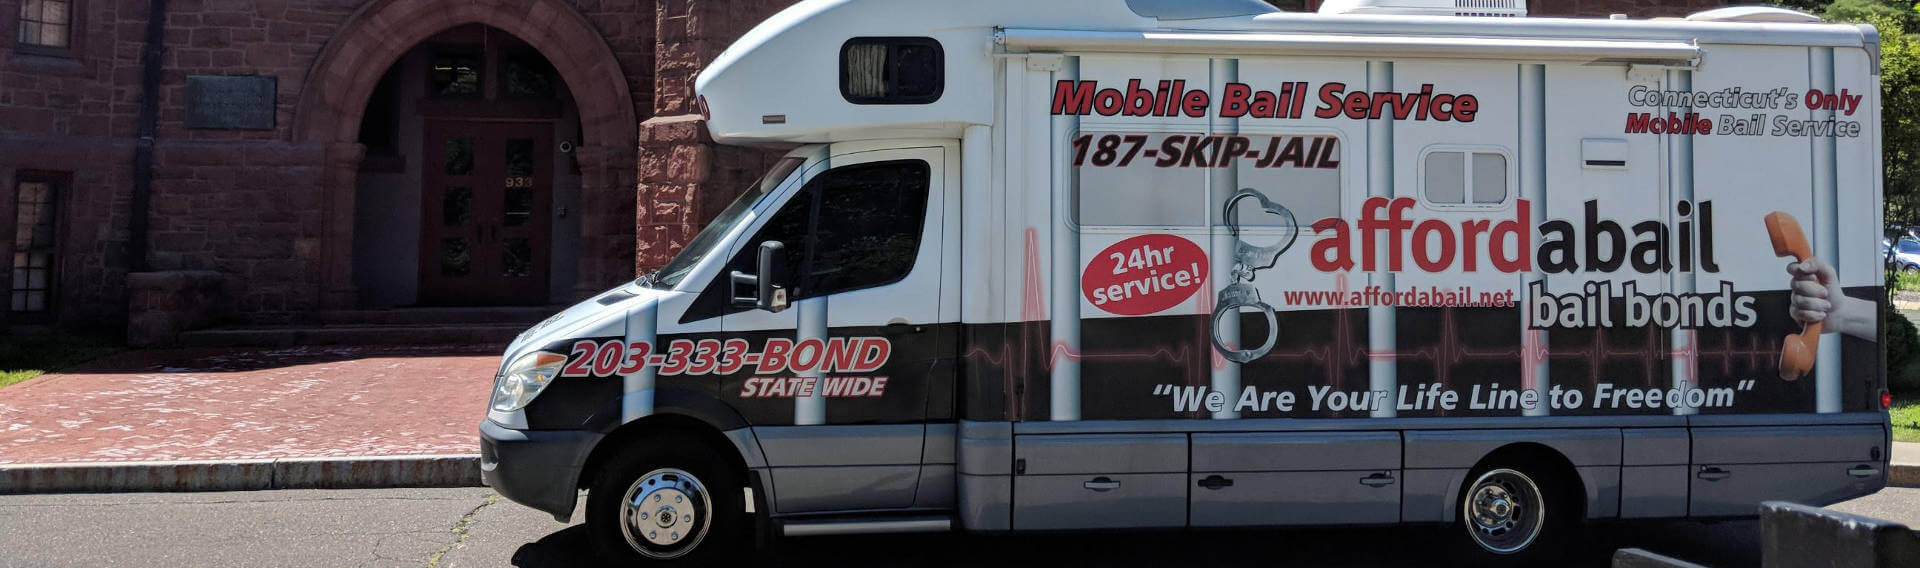 Mobile bail bonds service in Danbury CT